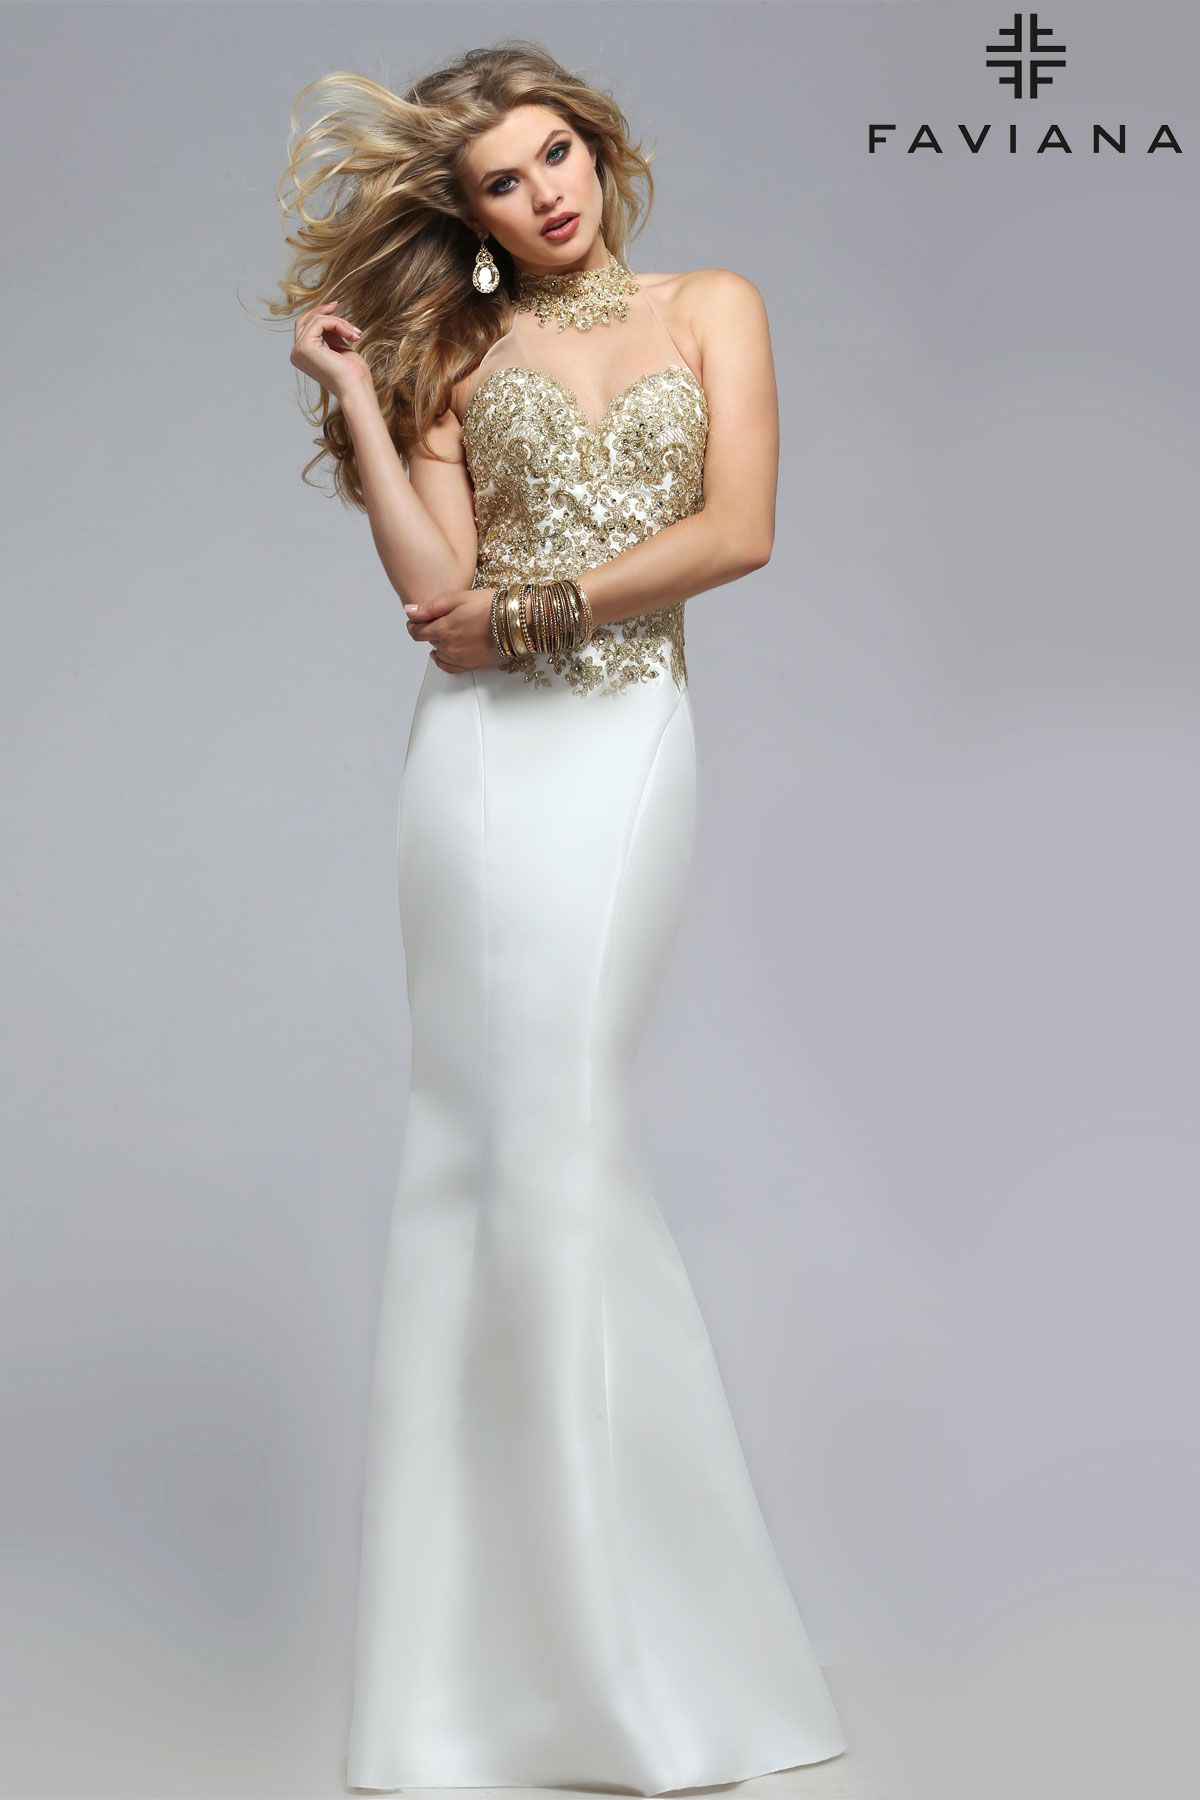 Frosted satin illusion jewel neck with lace appliqué faviana style